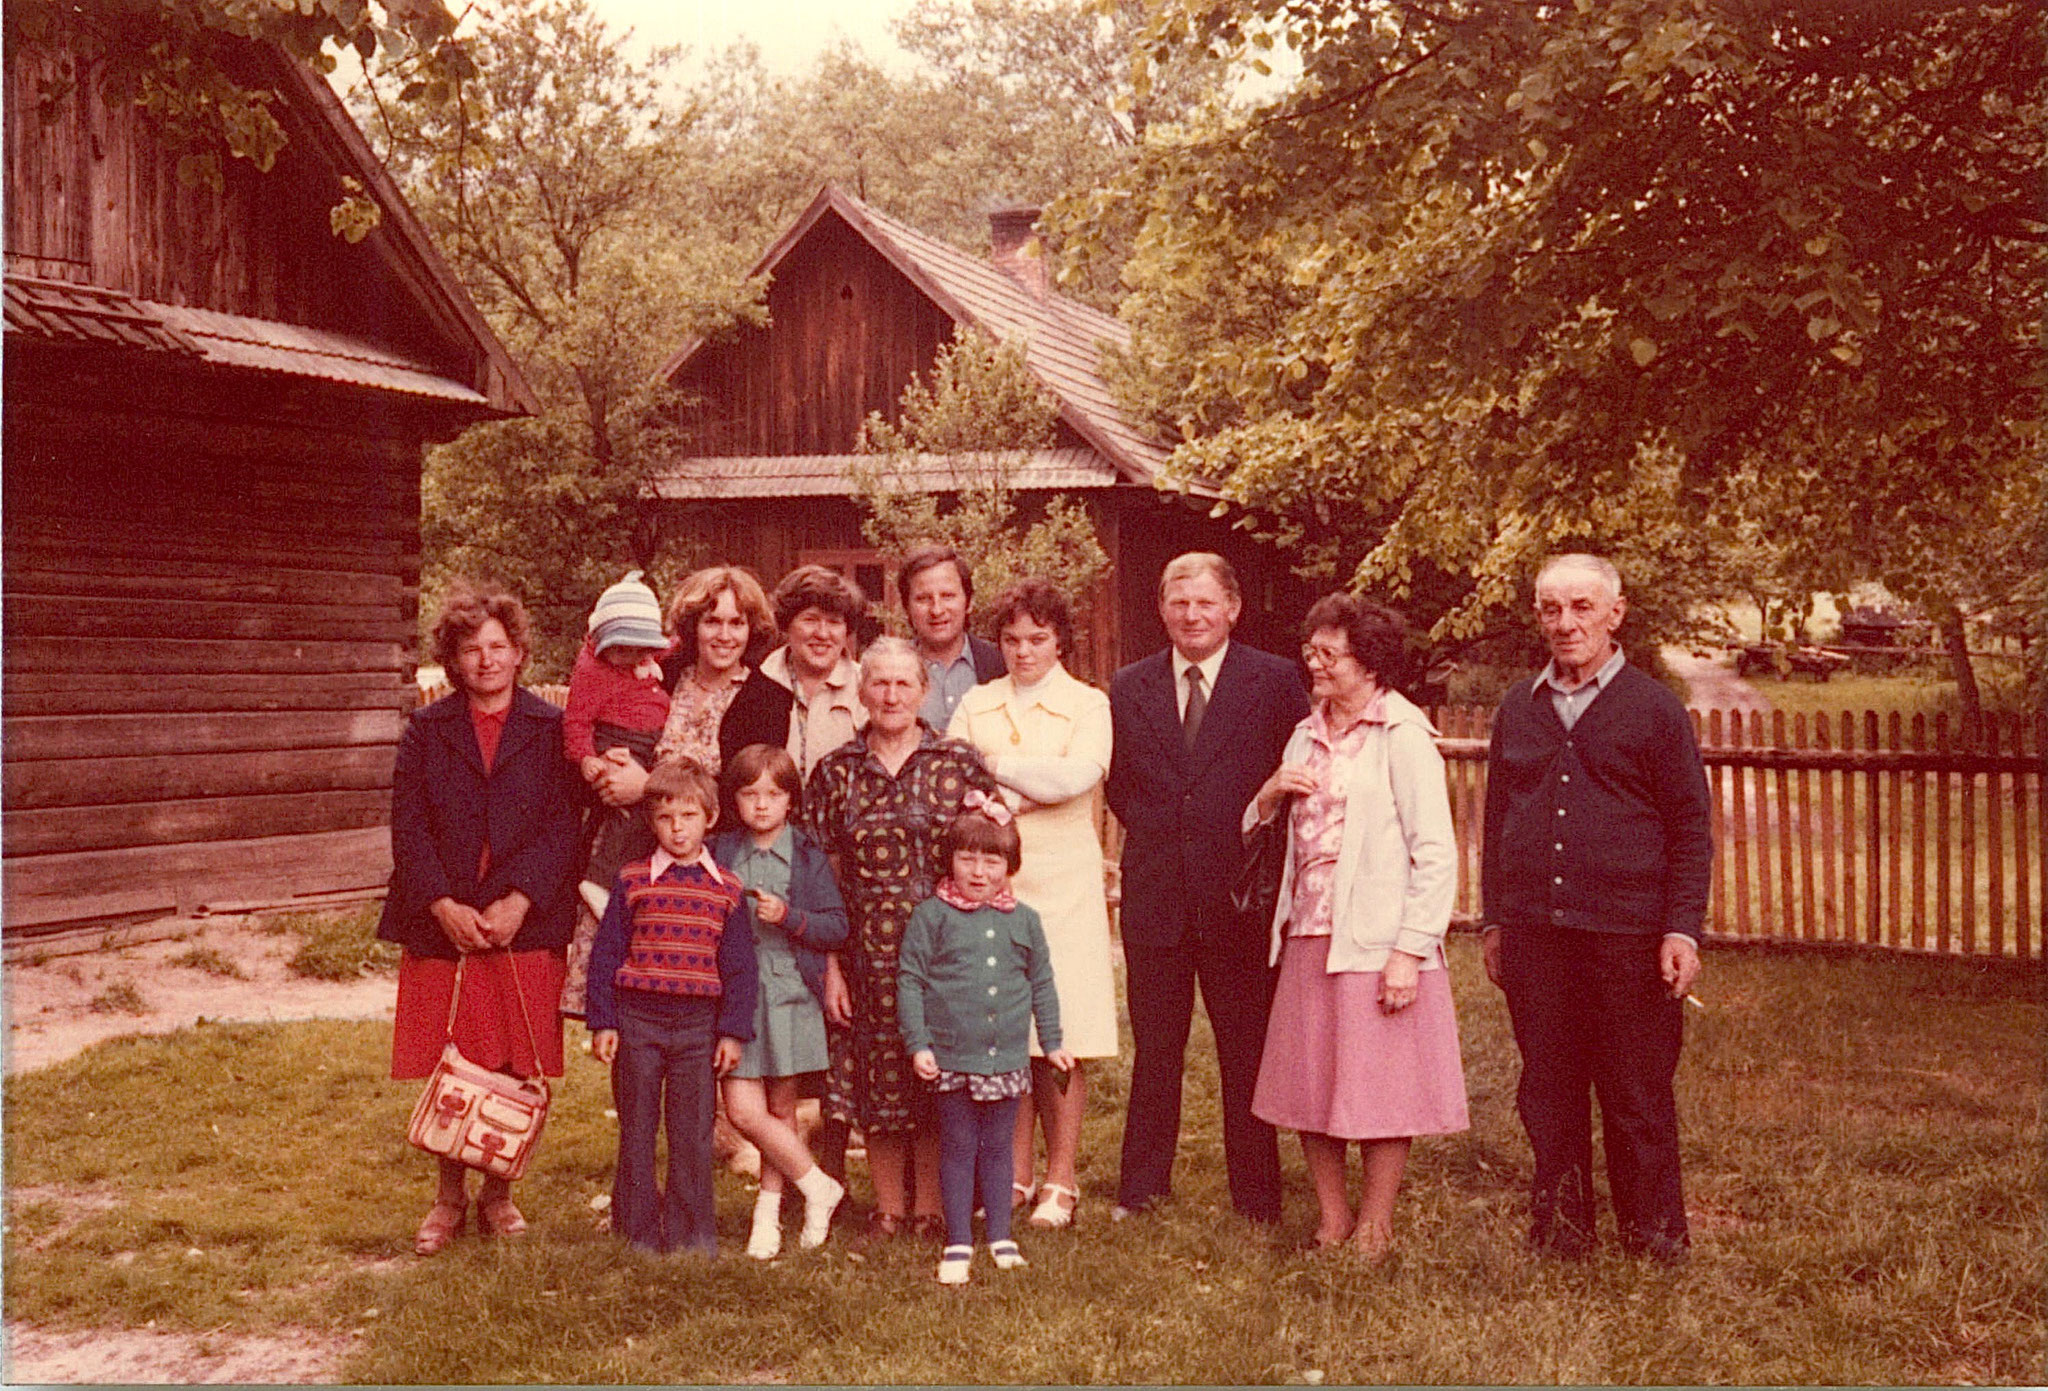 Gathering at the original home of Paul Bogdan; Germans burned this home & Walter now lives in a newer home, built since WWII behind this site. Jadwiga, Adam, Margaret, Lorraine holding Ala, Eleanor, Julia, Irena, Stanley & Halina, Genek,Mayme,Walter1978